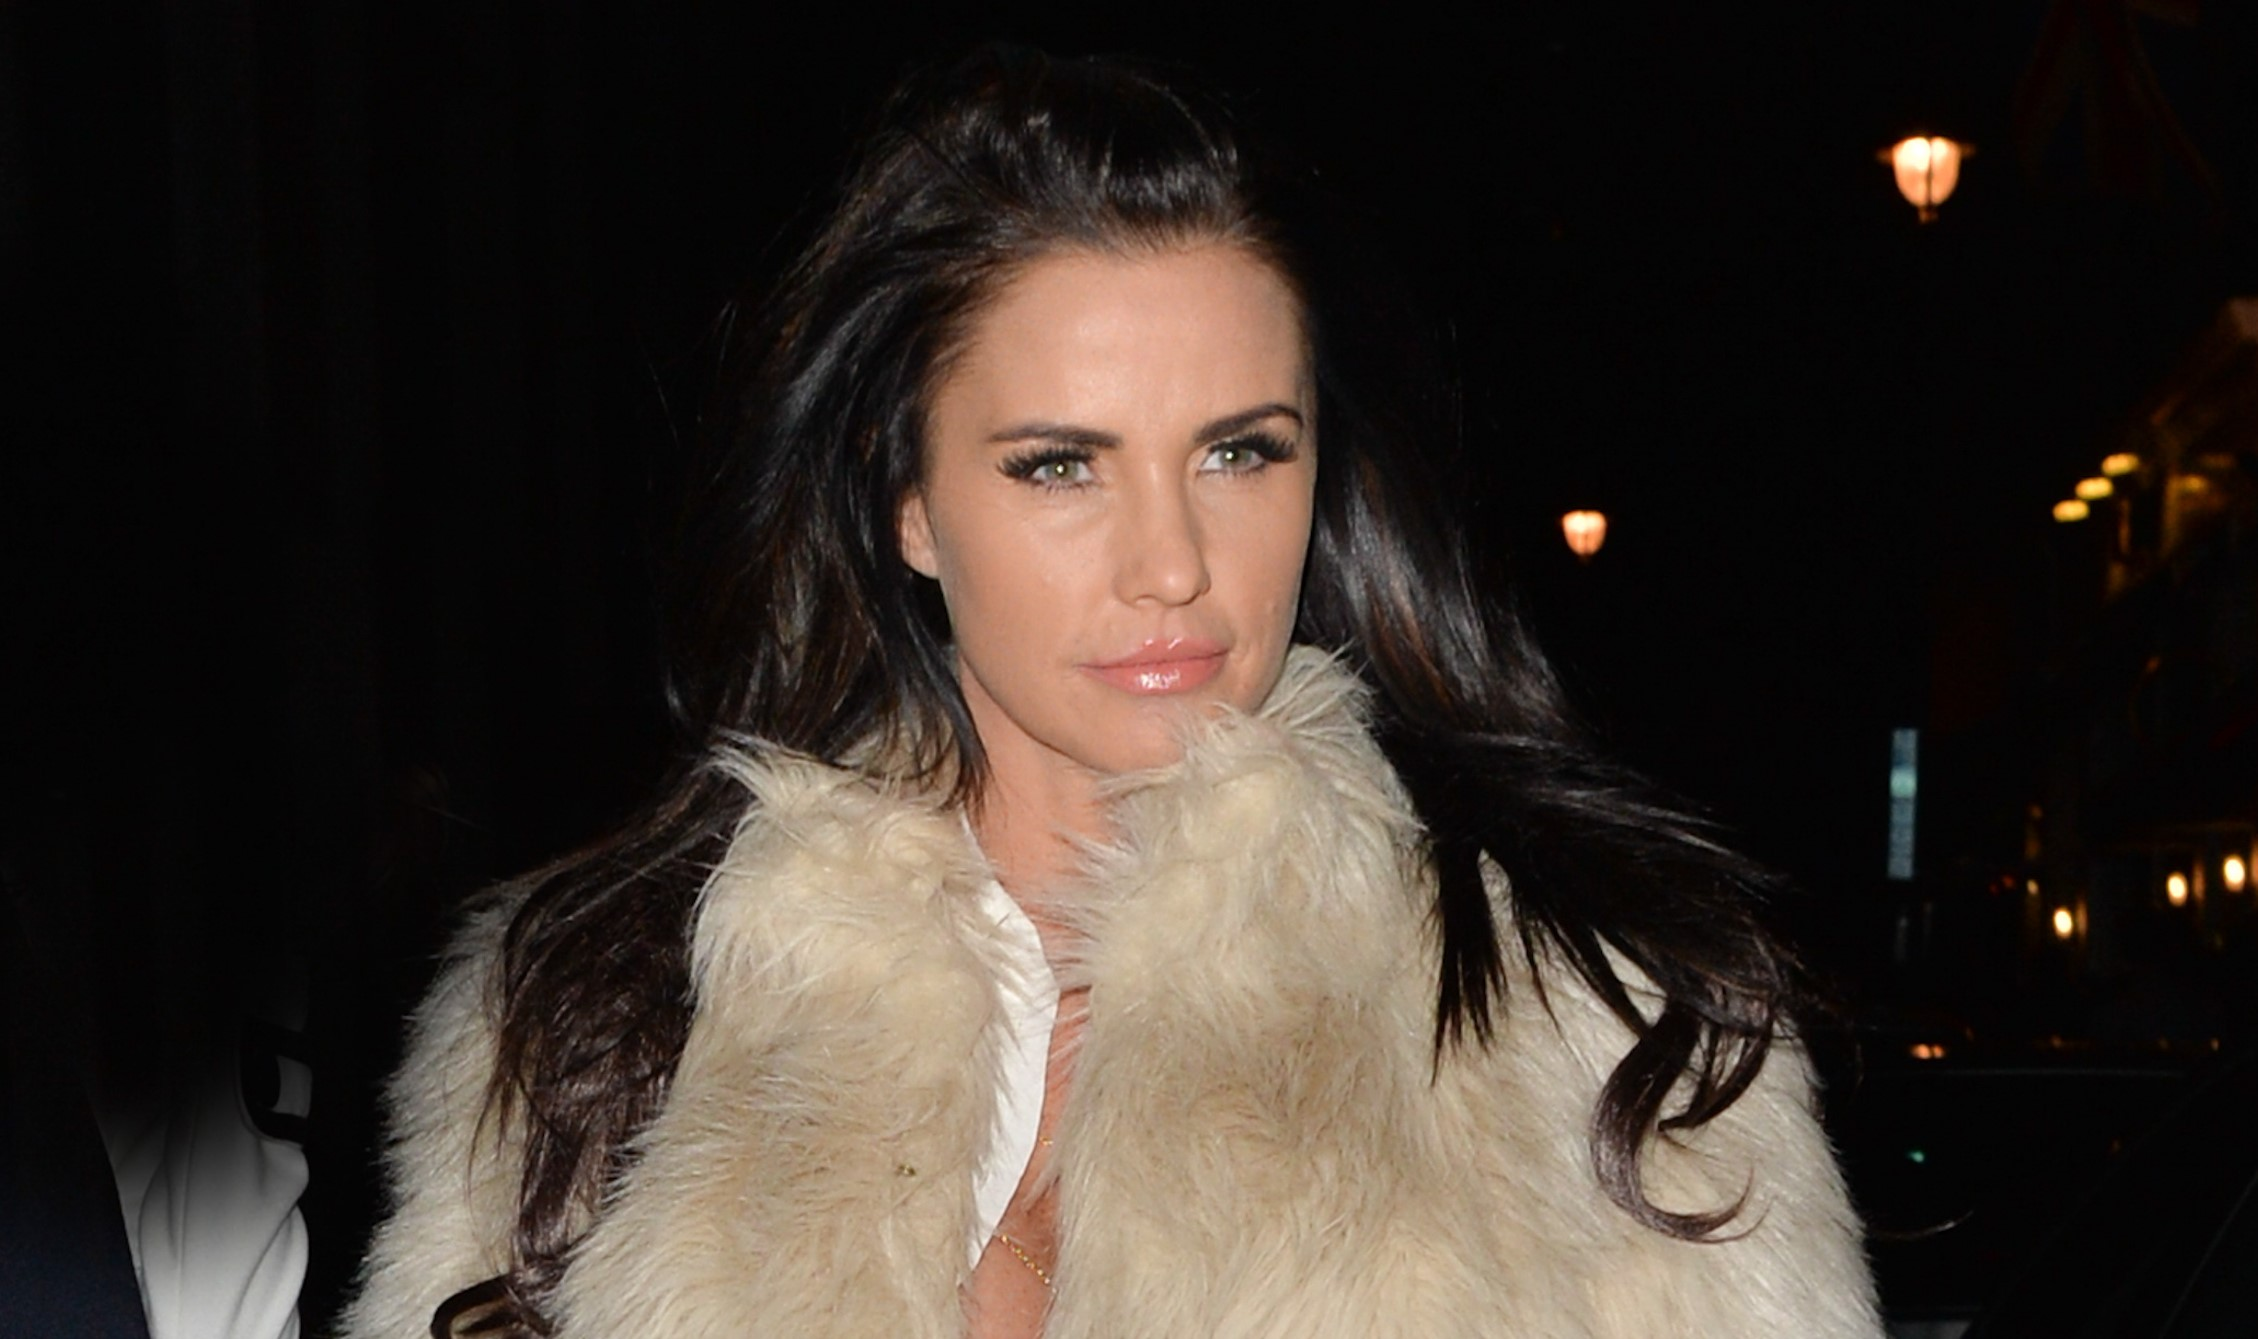 Katie Price celebrates Super Saturday with new man after 'three months apart'